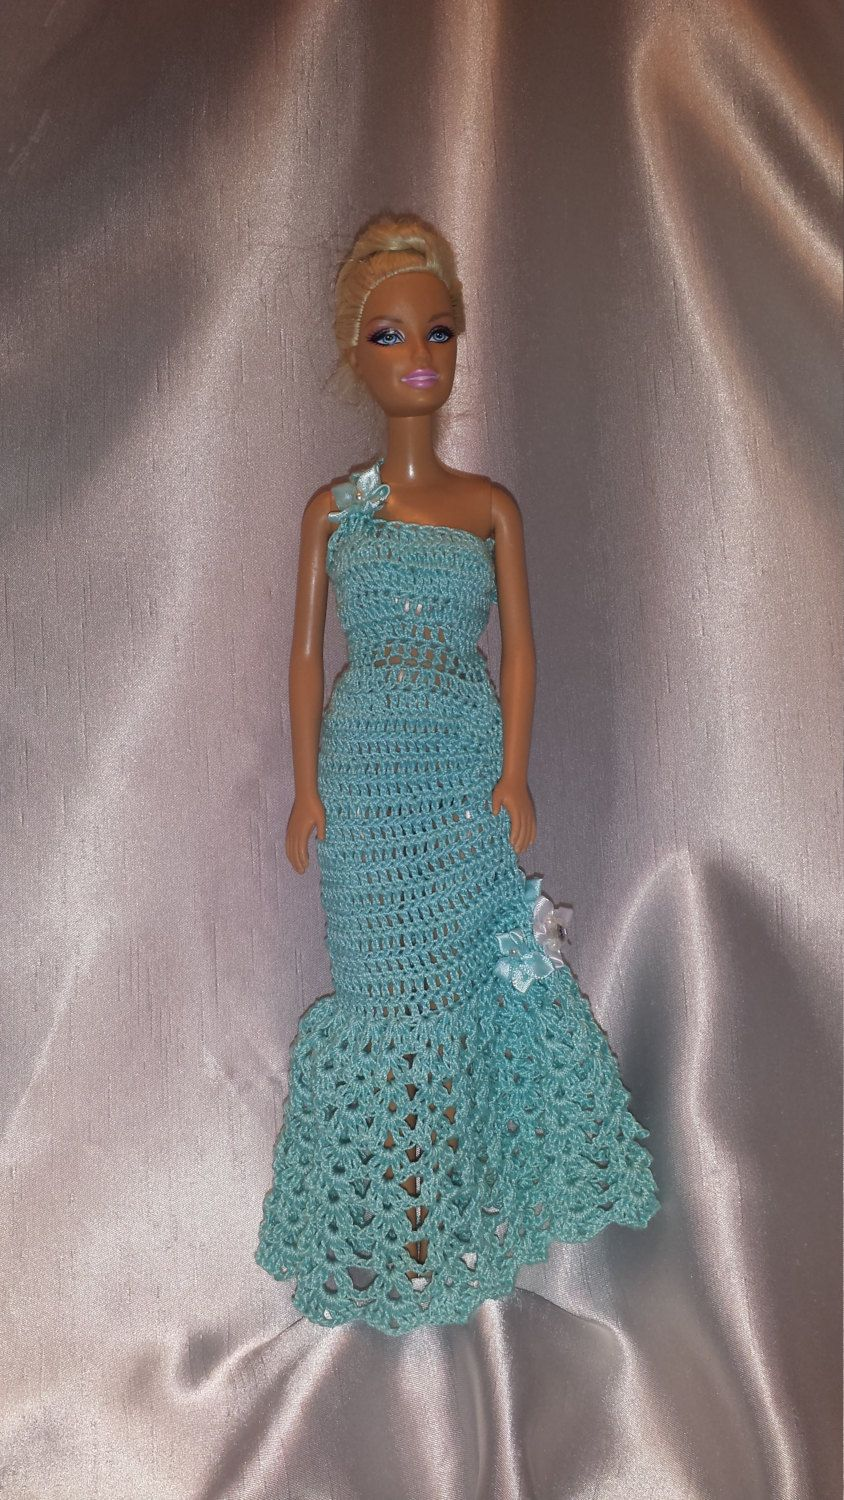 Crochet Barbie Aqua Blue Dress, Crochet Barbie Doll Clothes, Fashion ...